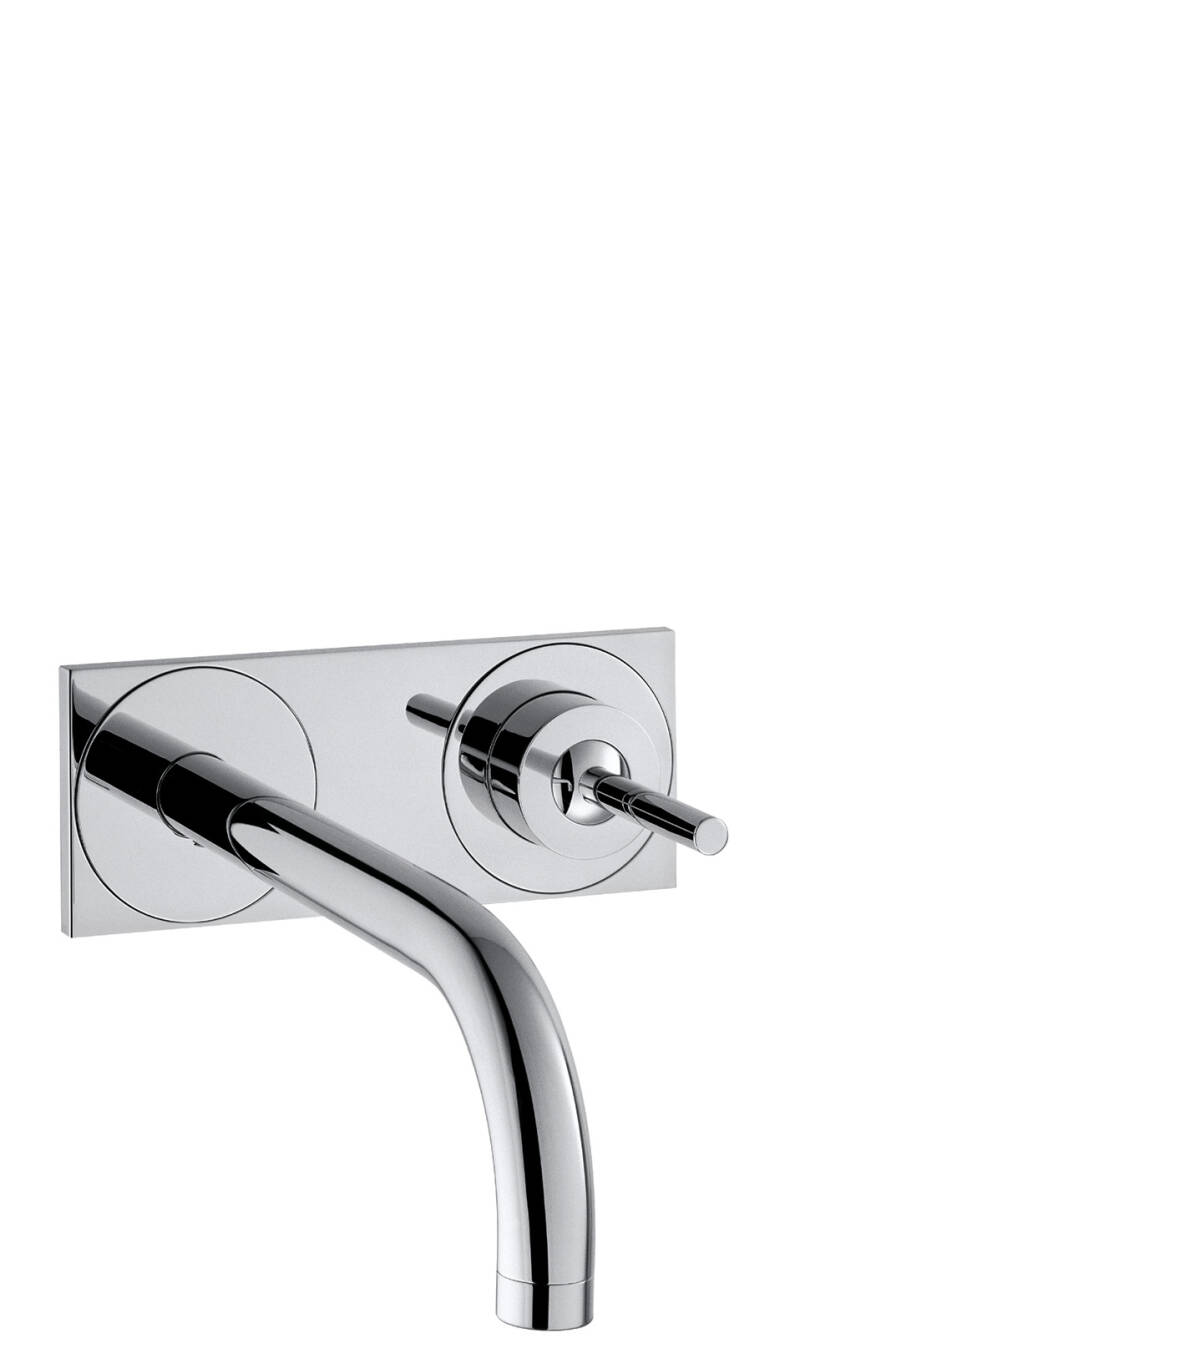 Single lever basin mixer for concealed installation wall-mounted with spout 165 mm and plate, Chrome, 38112000